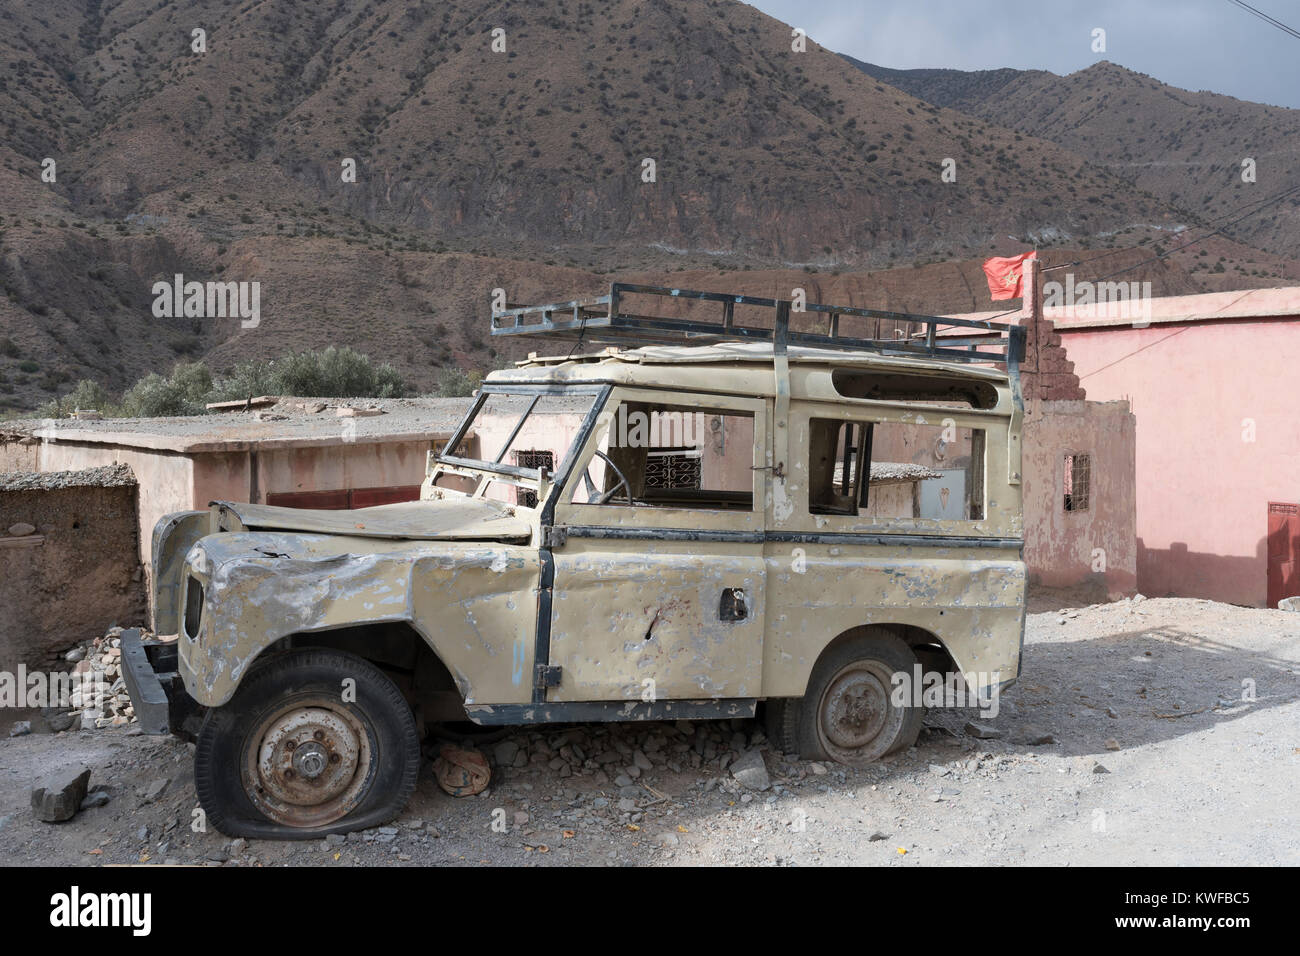 Abandoned Land Rover Defender given monument status on Tizi n Test, High Atlas mountain pass. Stock Photo